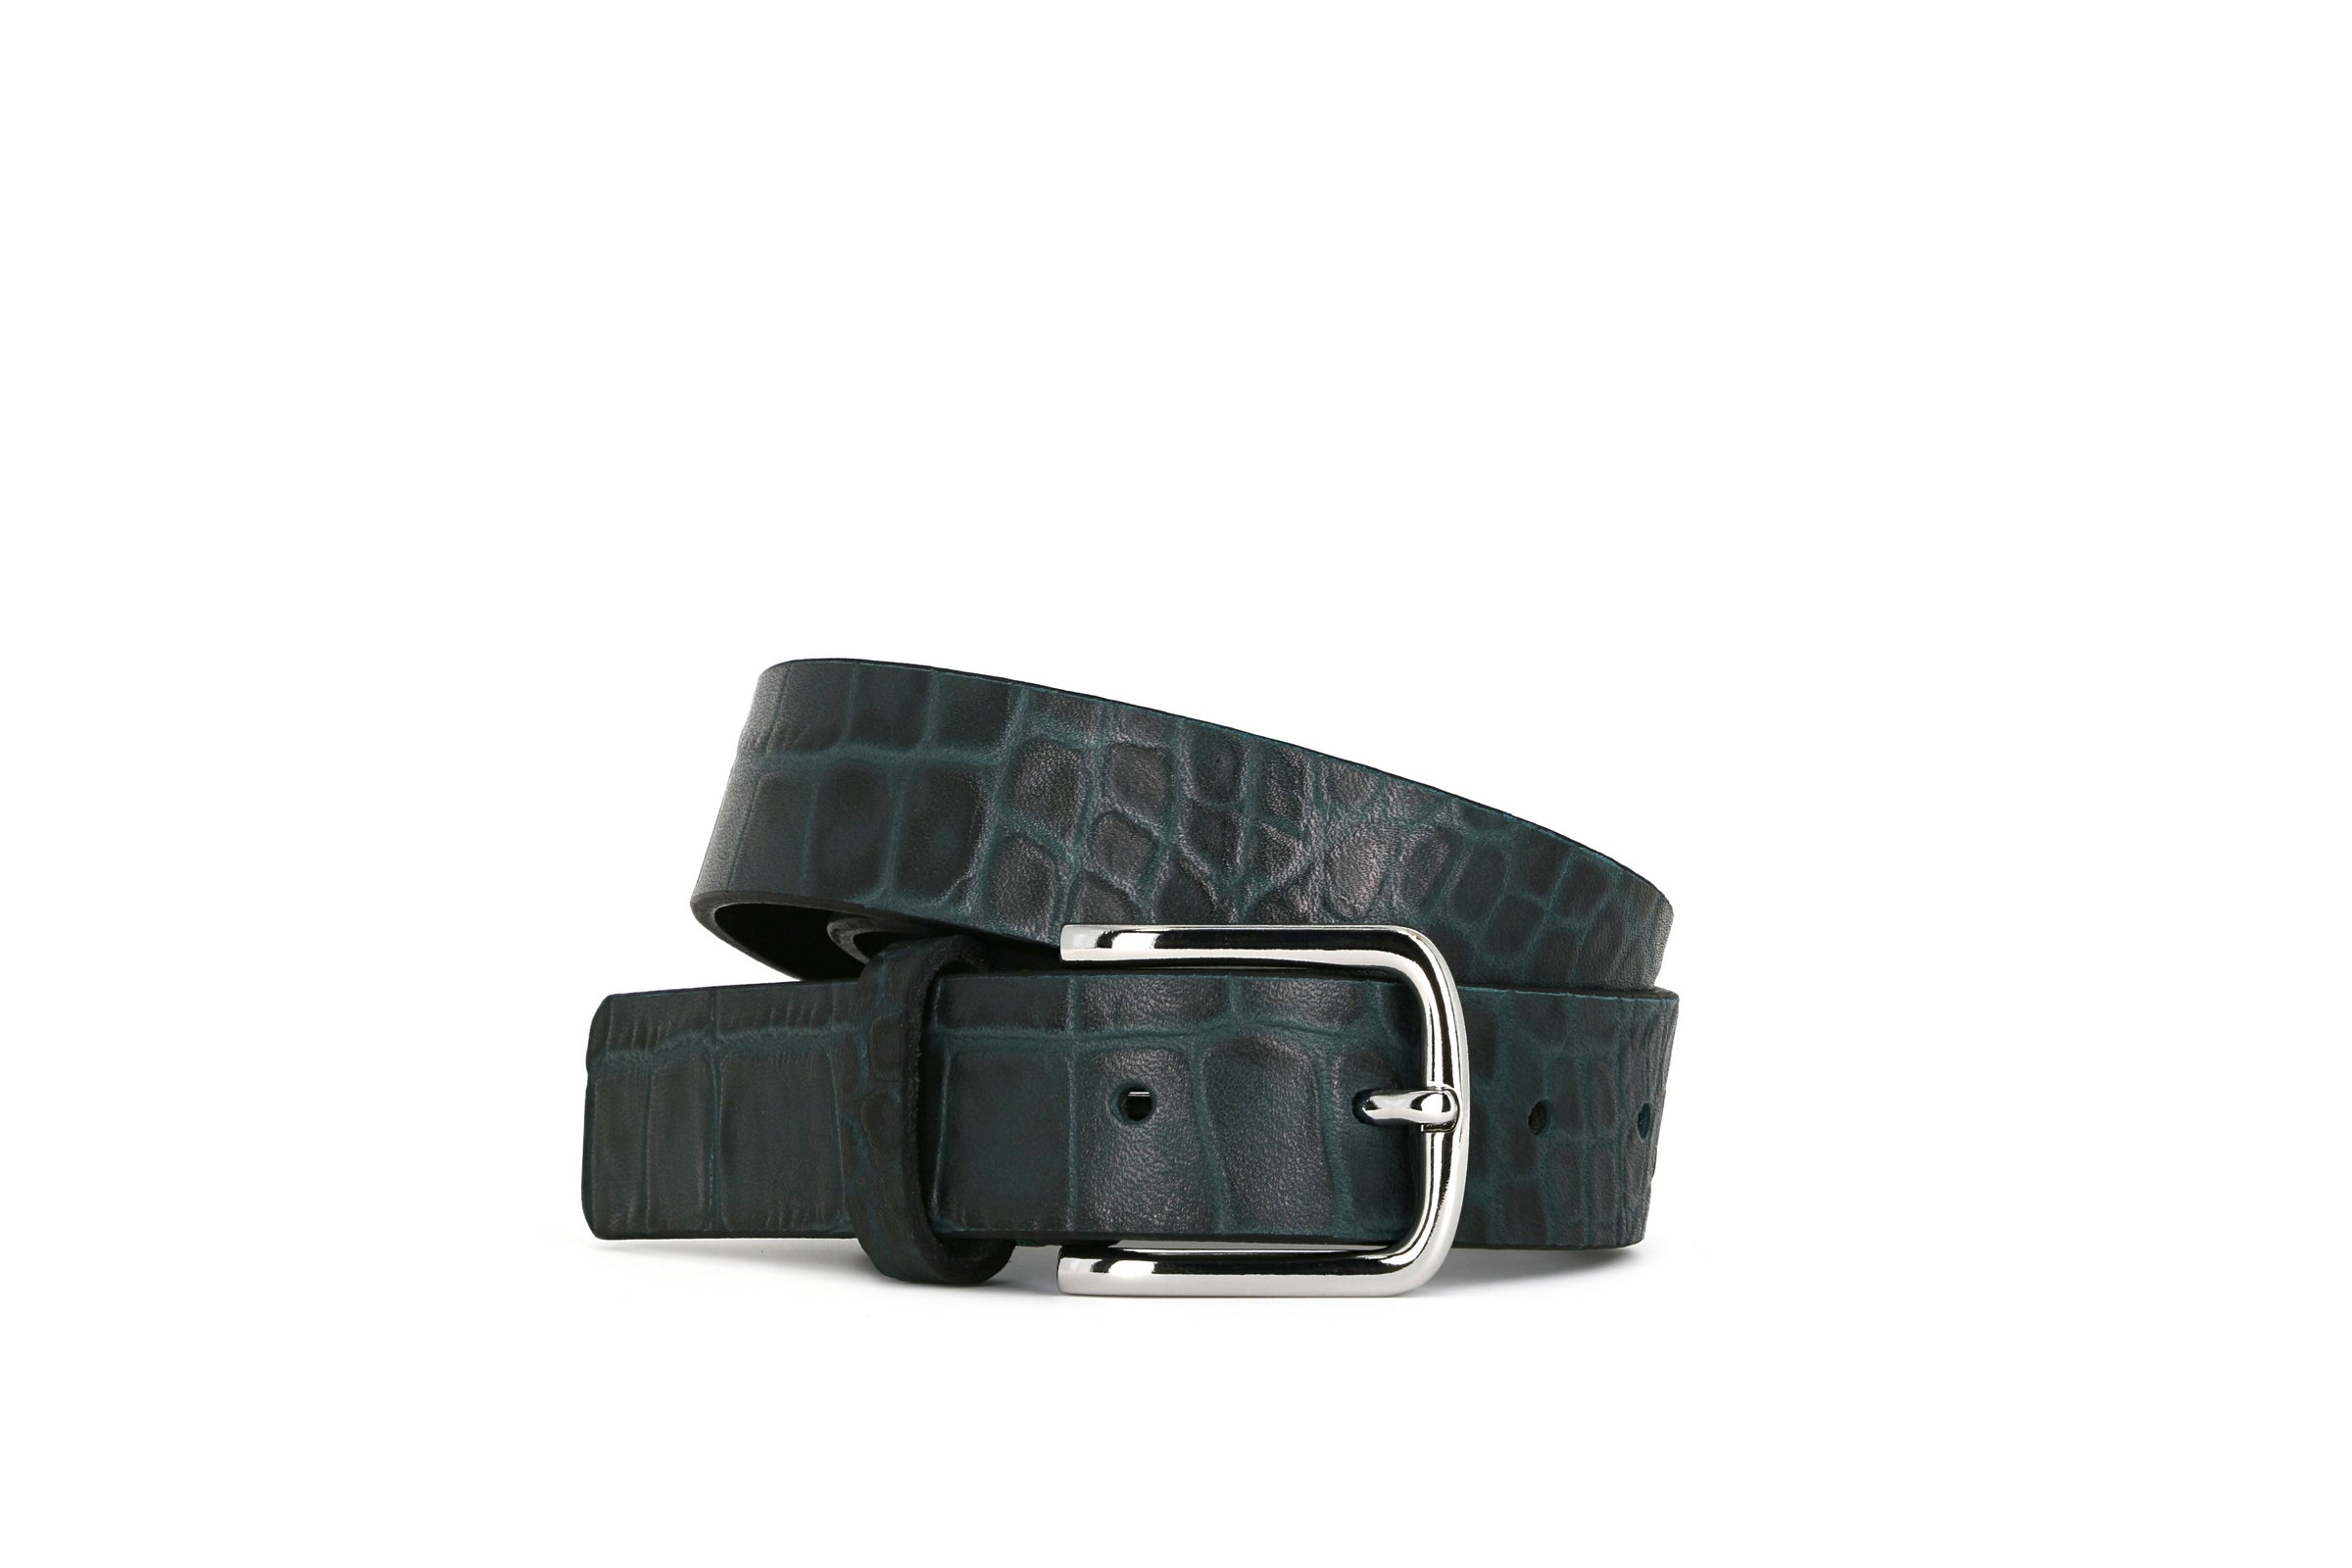 Patriot Croco Belt